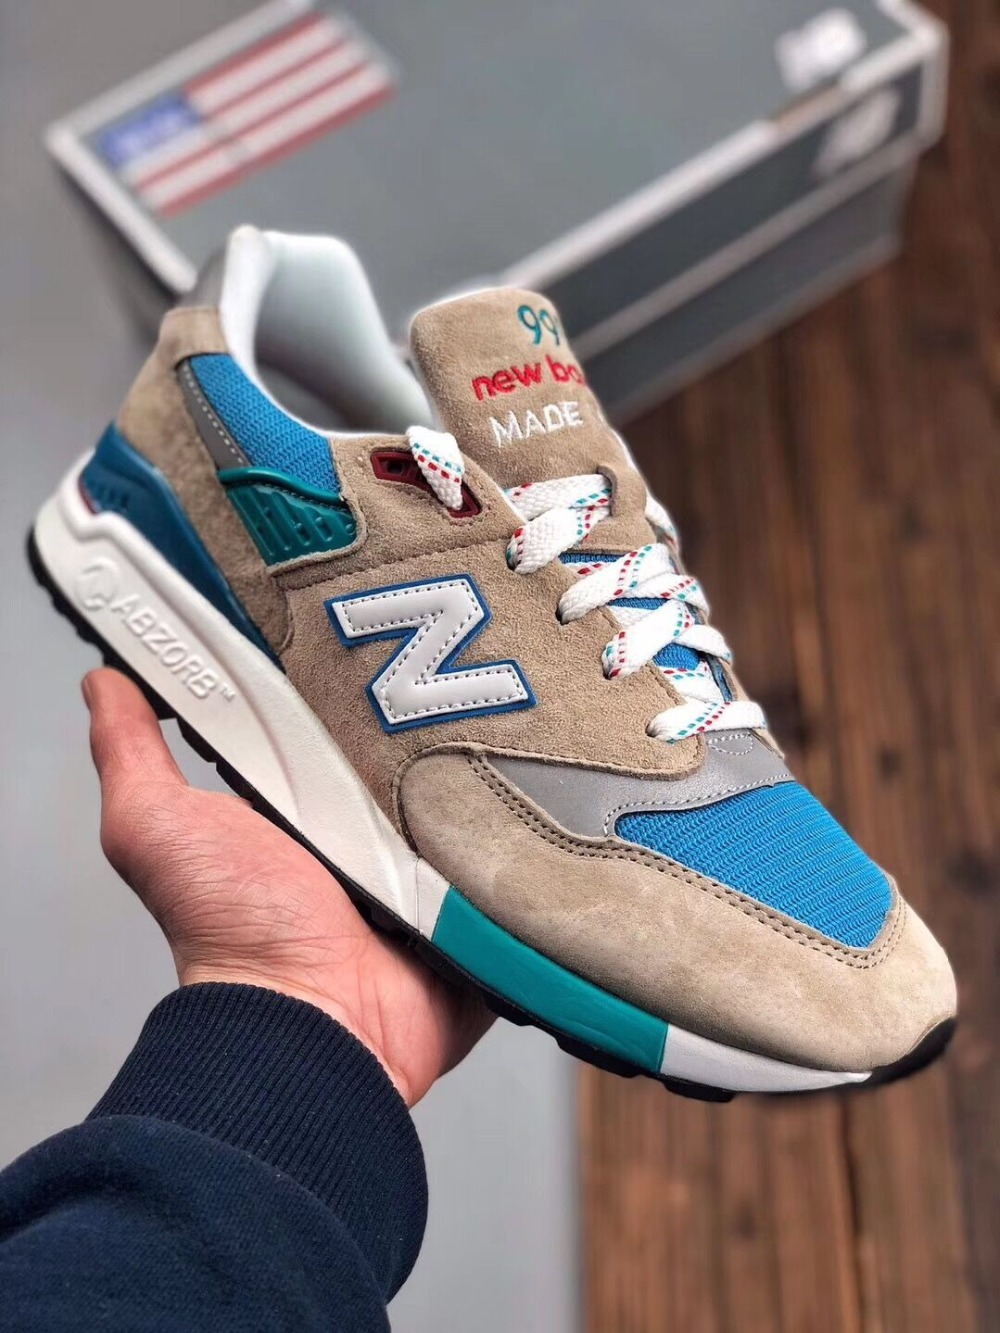 NEW BALANCE 998 Retro Authentic Mens/Womens Running Shoes,Classic REVlite M998XAD Outdoor Sports Shoes Sneakers Size Eur 36-48NEW BALANCE 998 Retro Authentic Mens/Womens Running Shoes,Classic REVlite M998XAD Outdoor Sports Shoes Sneakers Size Eur 36-48